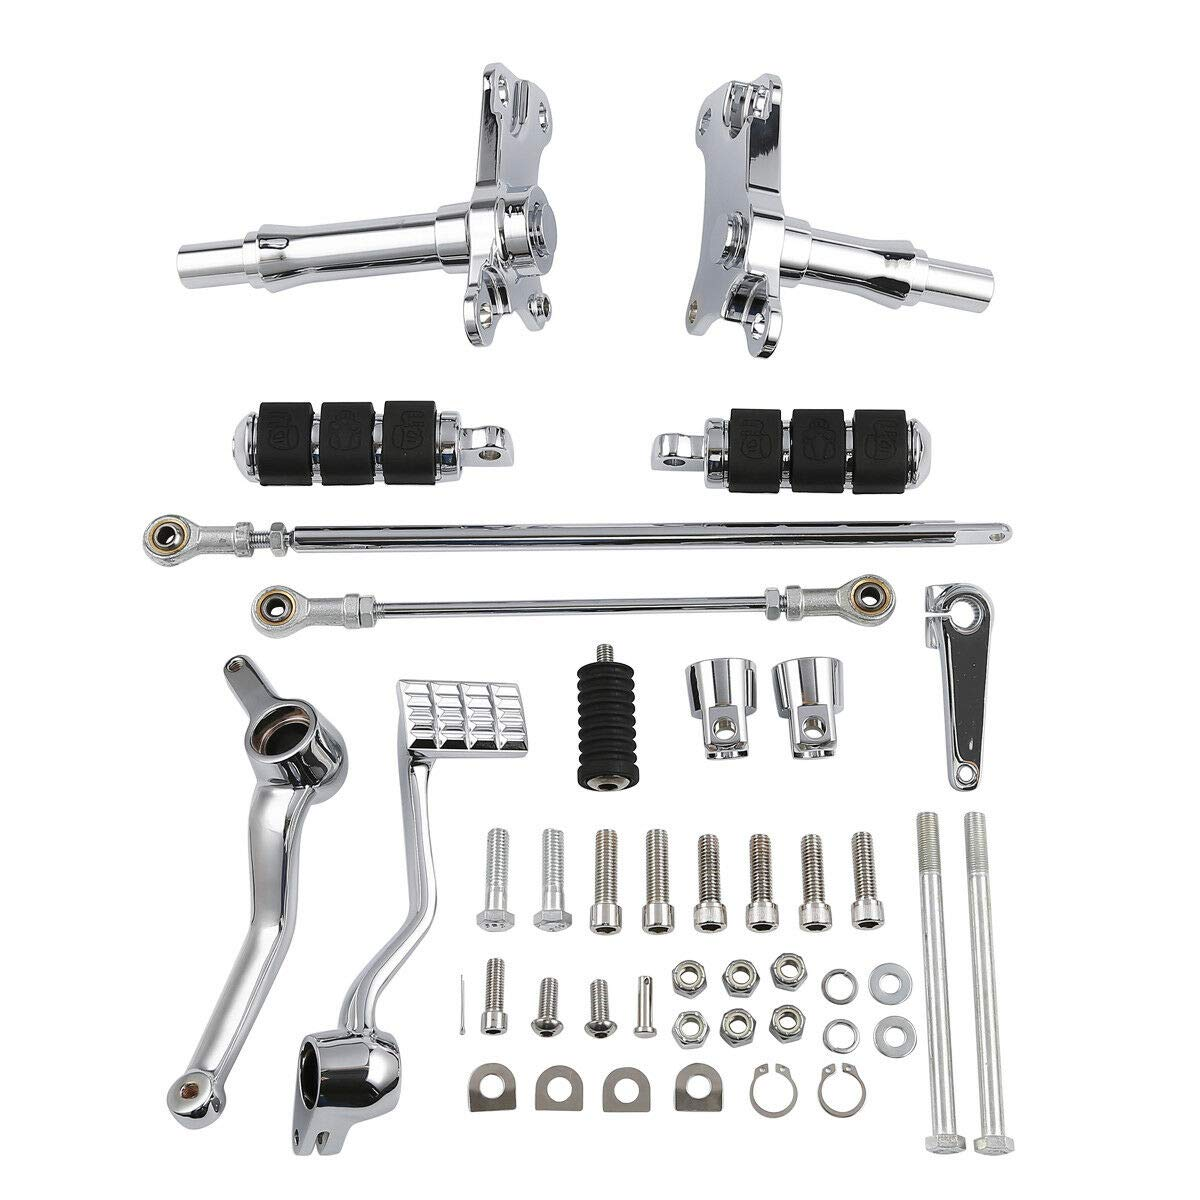 TCT-MT Complete Forward Control Pegs Levers /& Linkage Fit For Harley Sportster XL 883 1200 1991-2003 Custom Anniversary Hugger Police XL883C